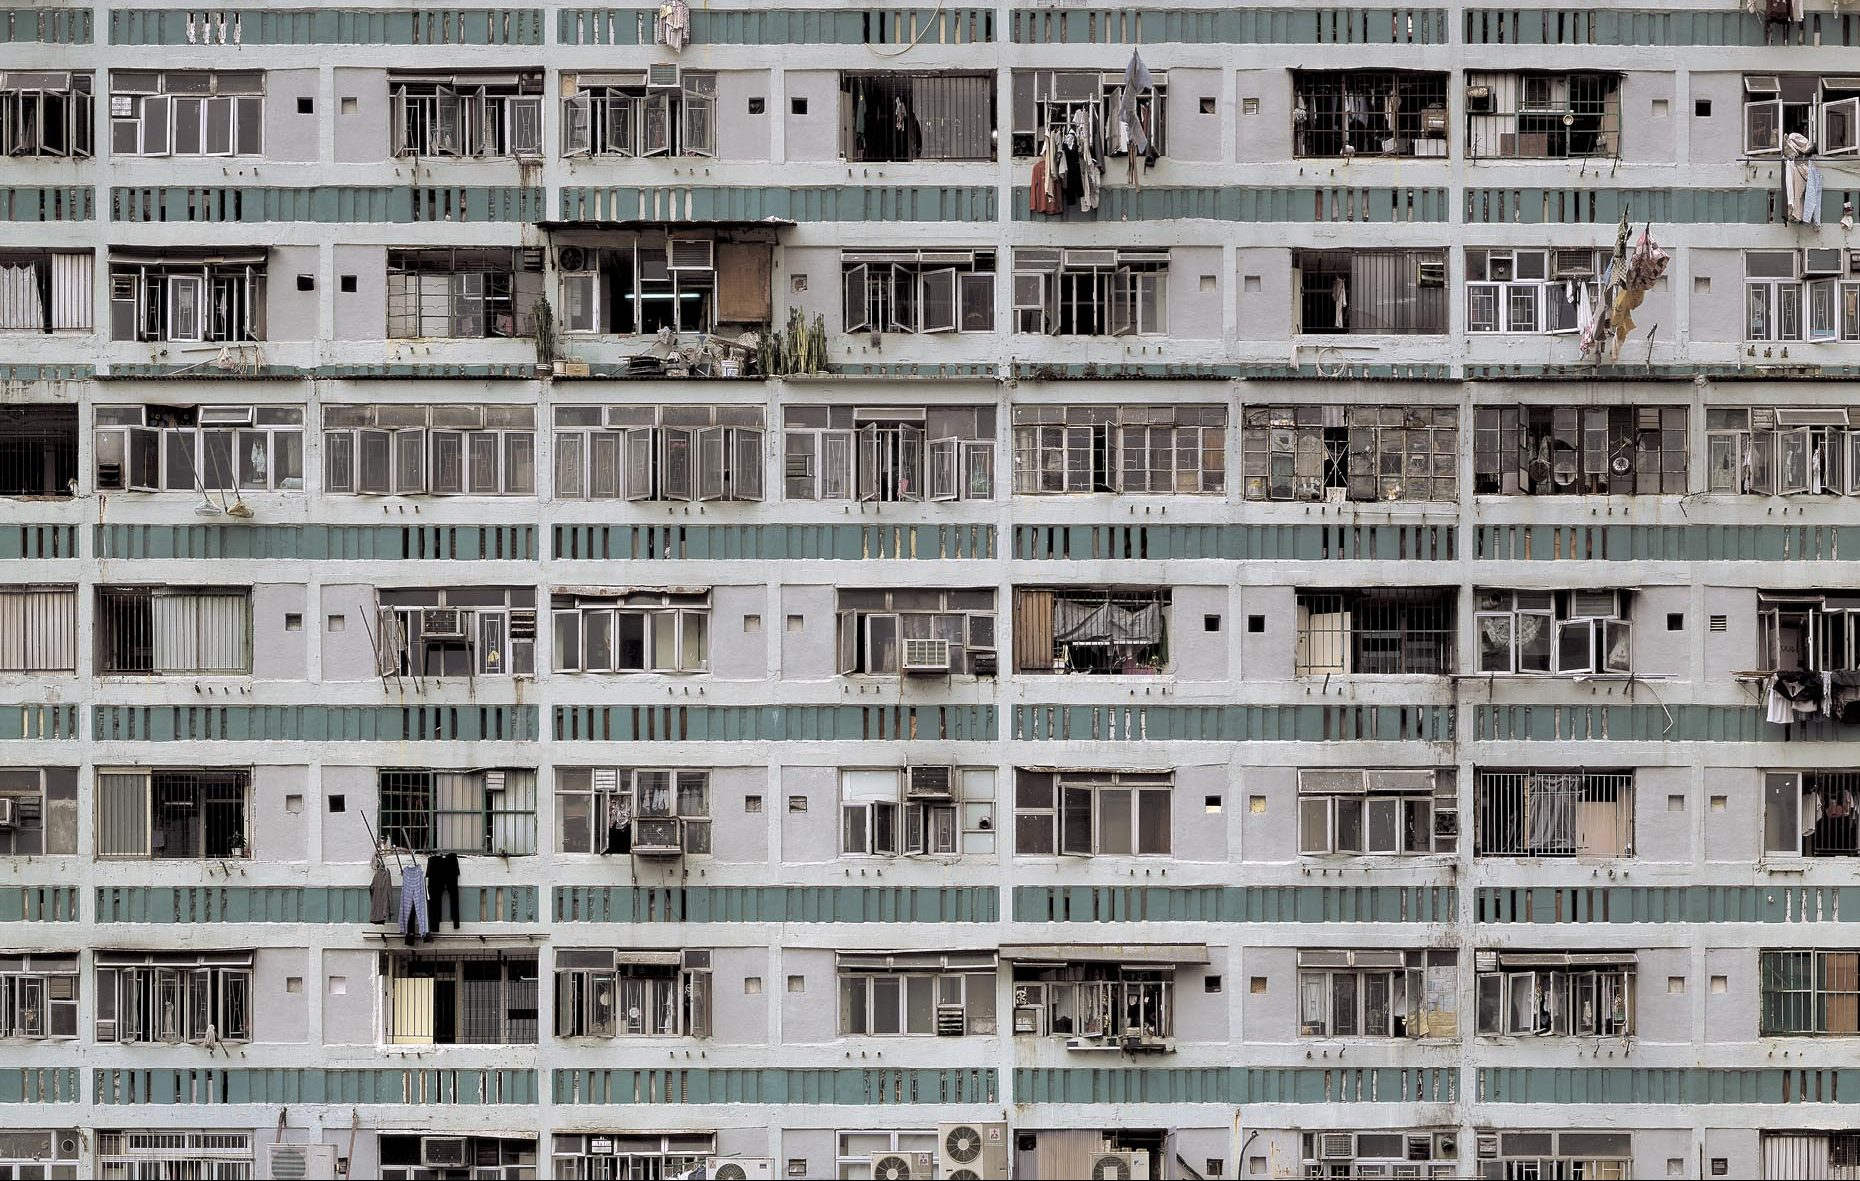 Michael Wolf, whose photos of Hong Kong showed its density, died at 65